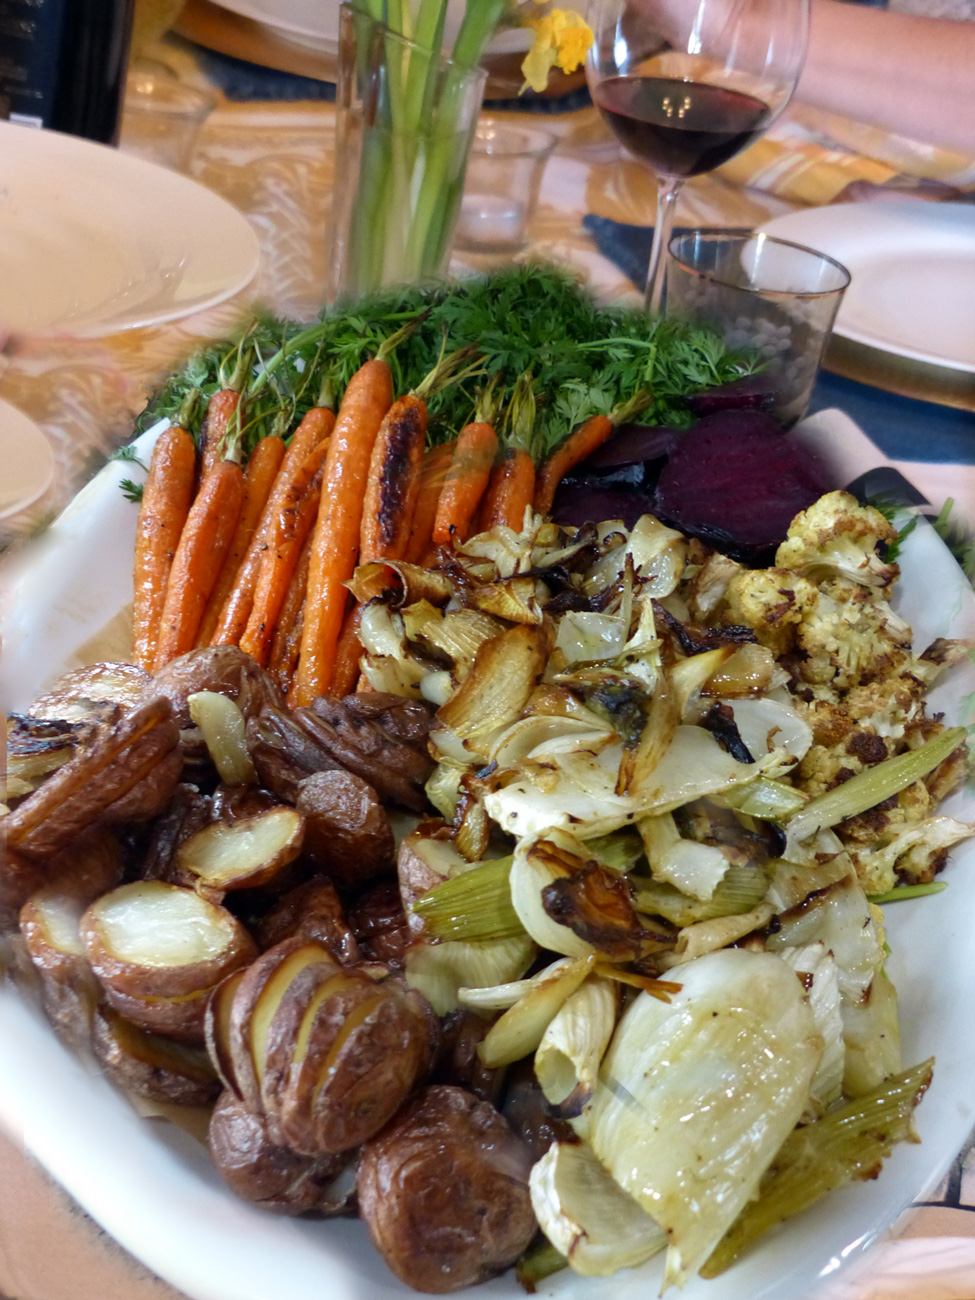 A Feast of roasted vegetables.